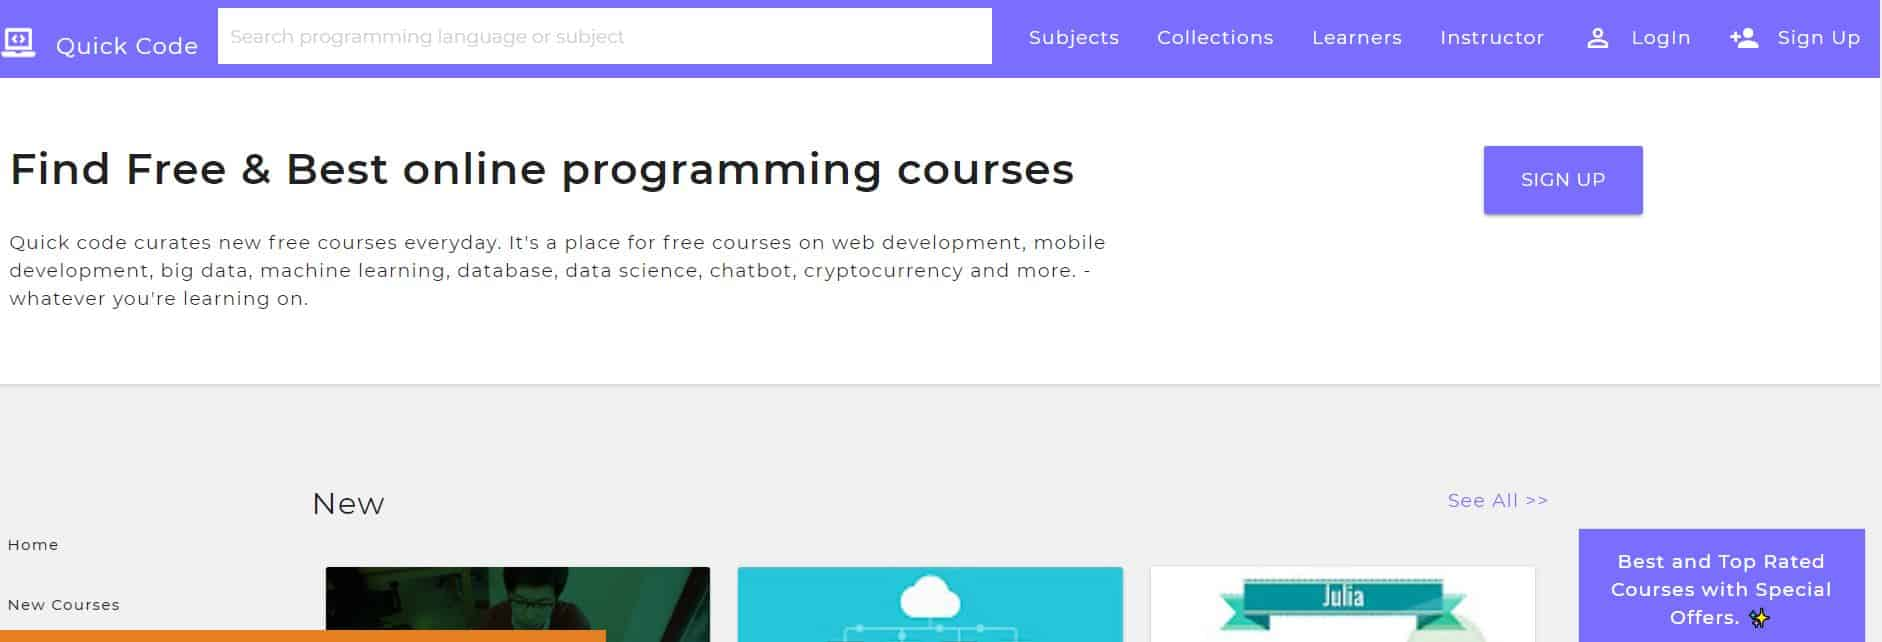 Learn to Code with Quick Code